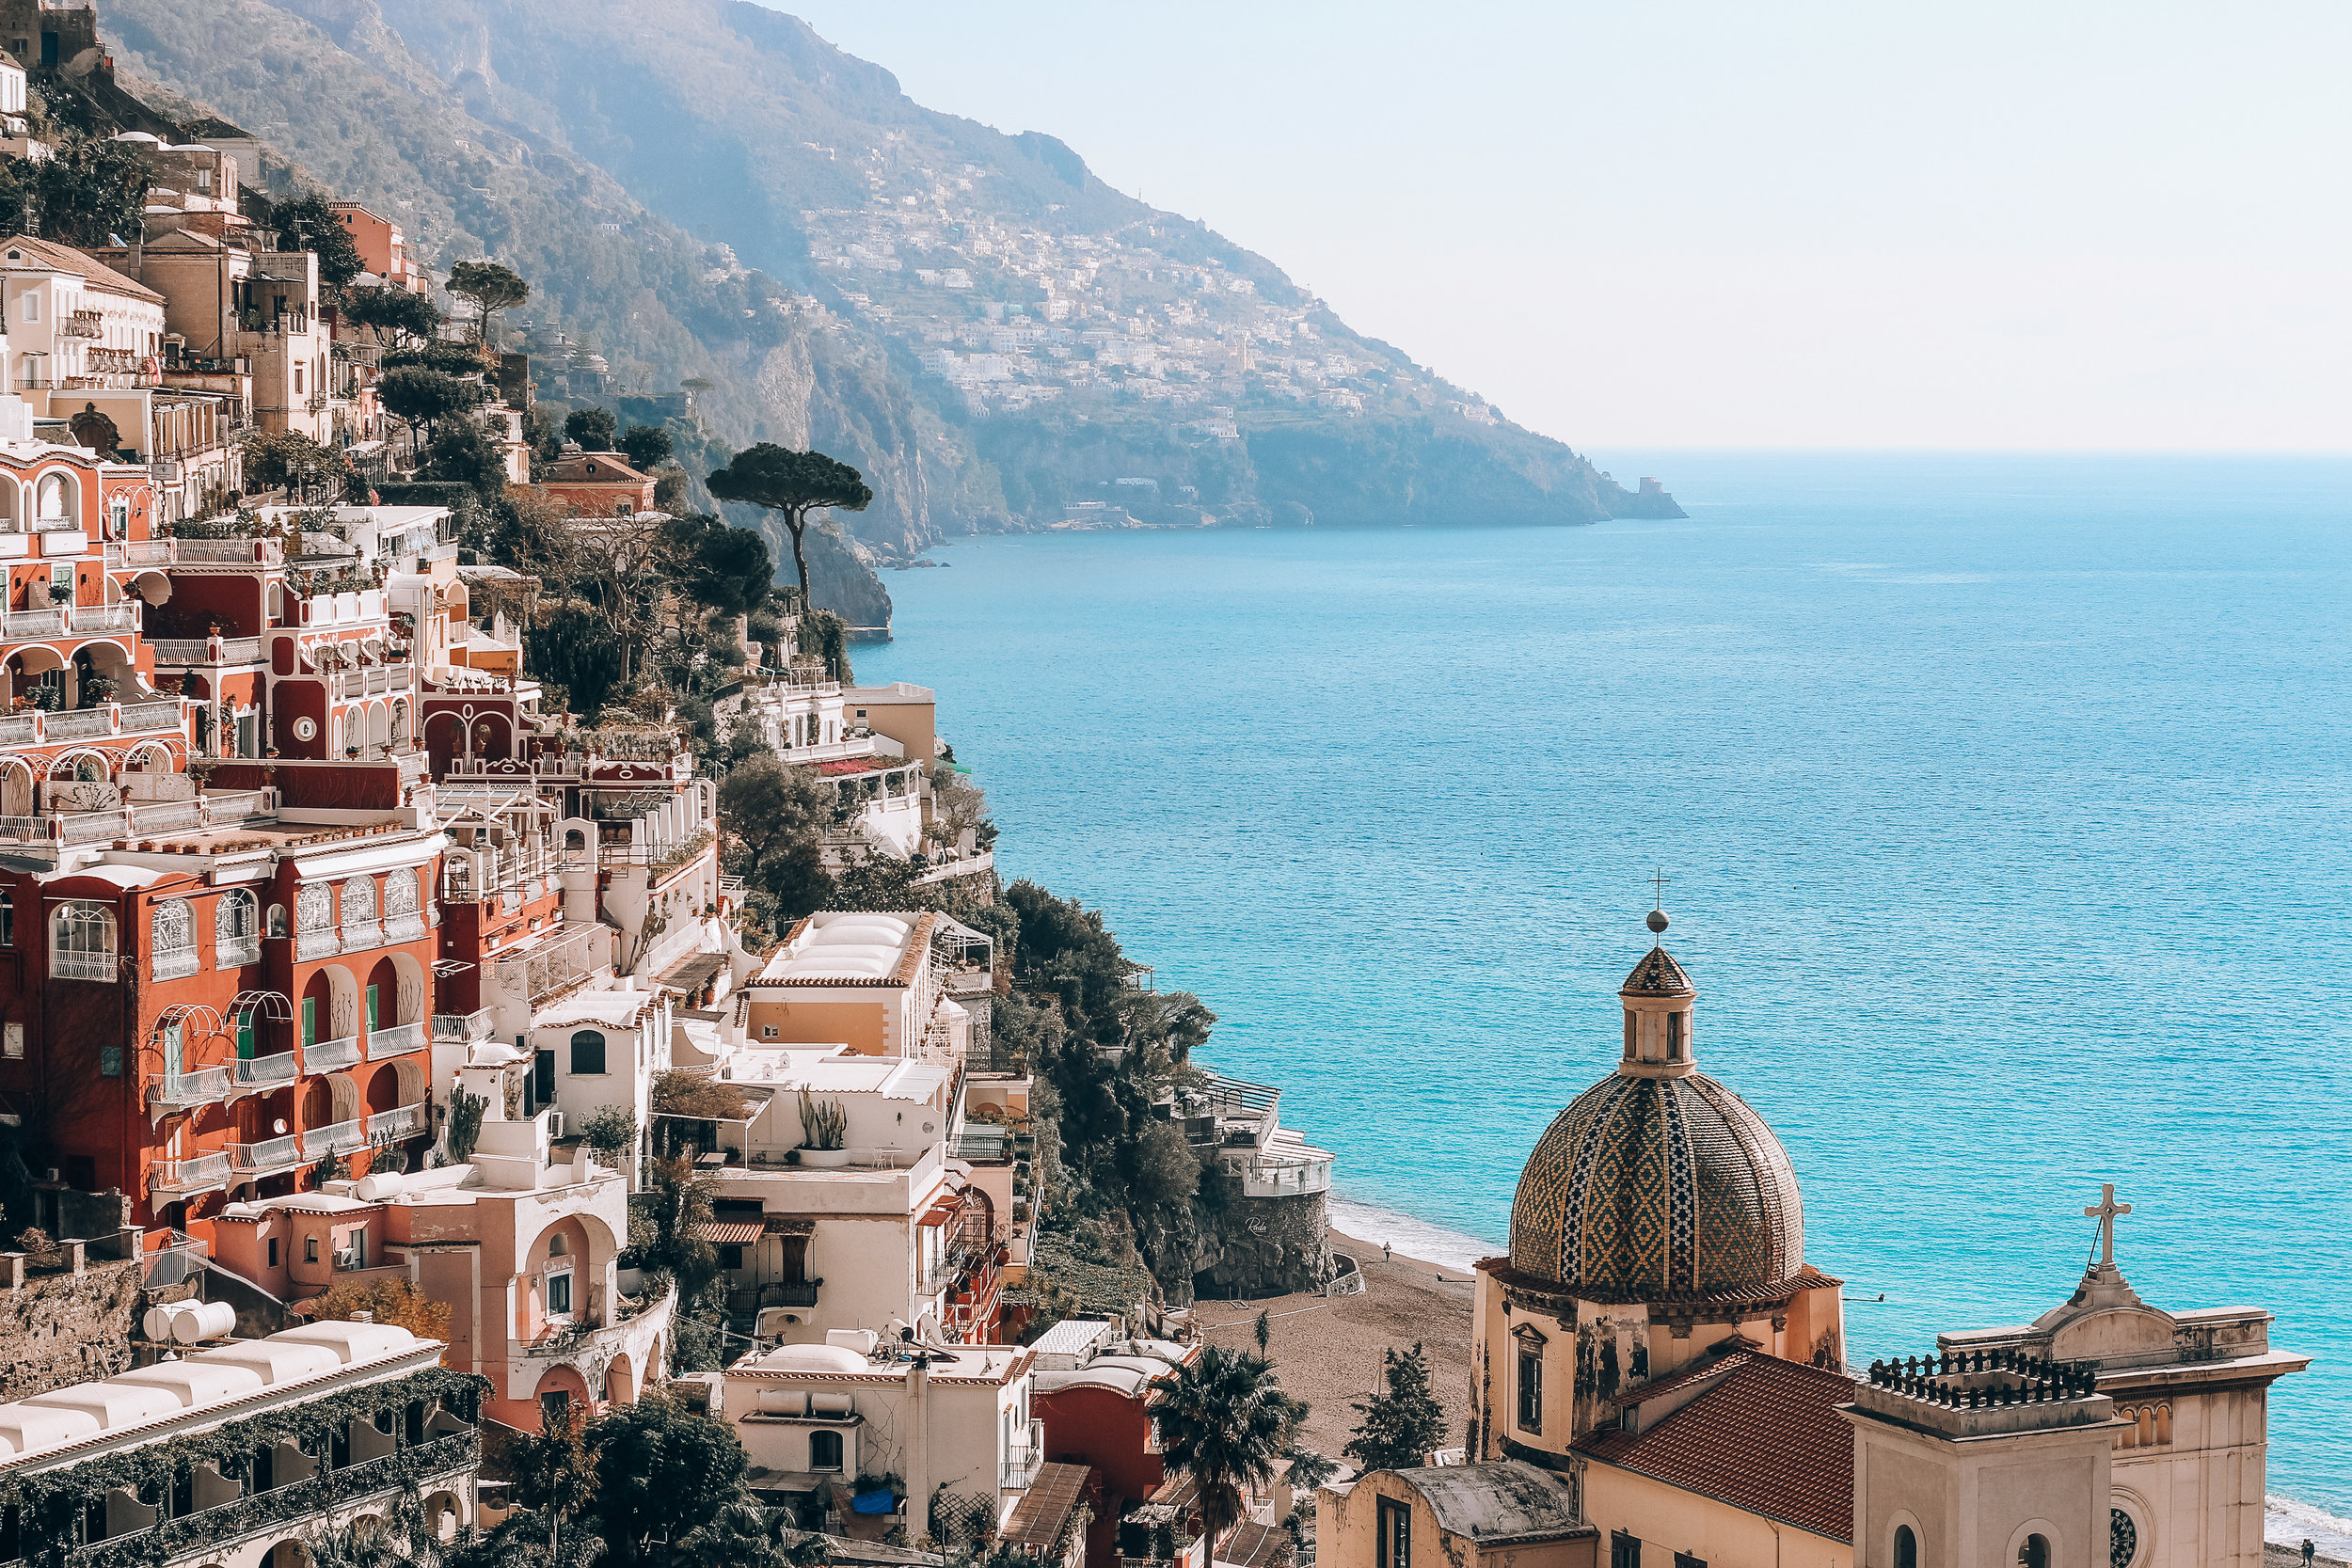 nicole-daacke-photography-destination-elopement-wedding-in-italy-florence-elopement-amalfi-coast-elopement-photographer-positano-photographer-rome-destination-wedding-photographer-italy-italian-landscapes-italy-adventure-itinerary -1346.jpg